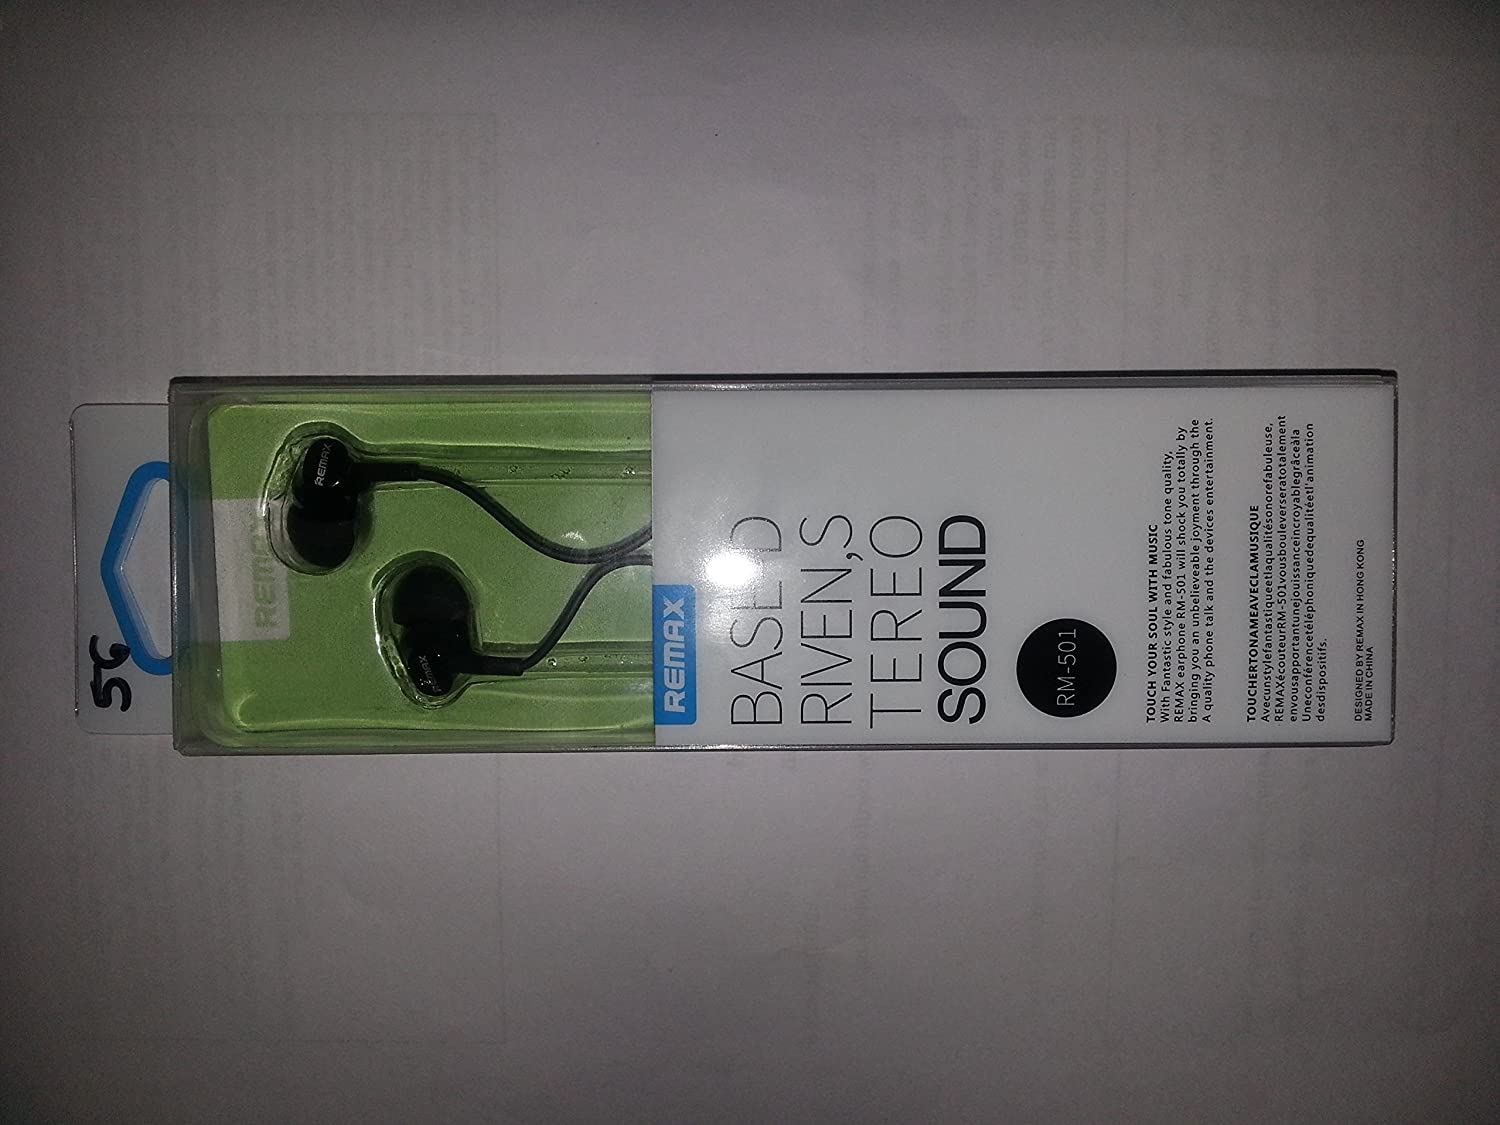 Remax Base D Rivens Tereo Sound Headphones Blue Cell Earphone Rm 501 With Microphone Headset Handsfree Phones Accessories